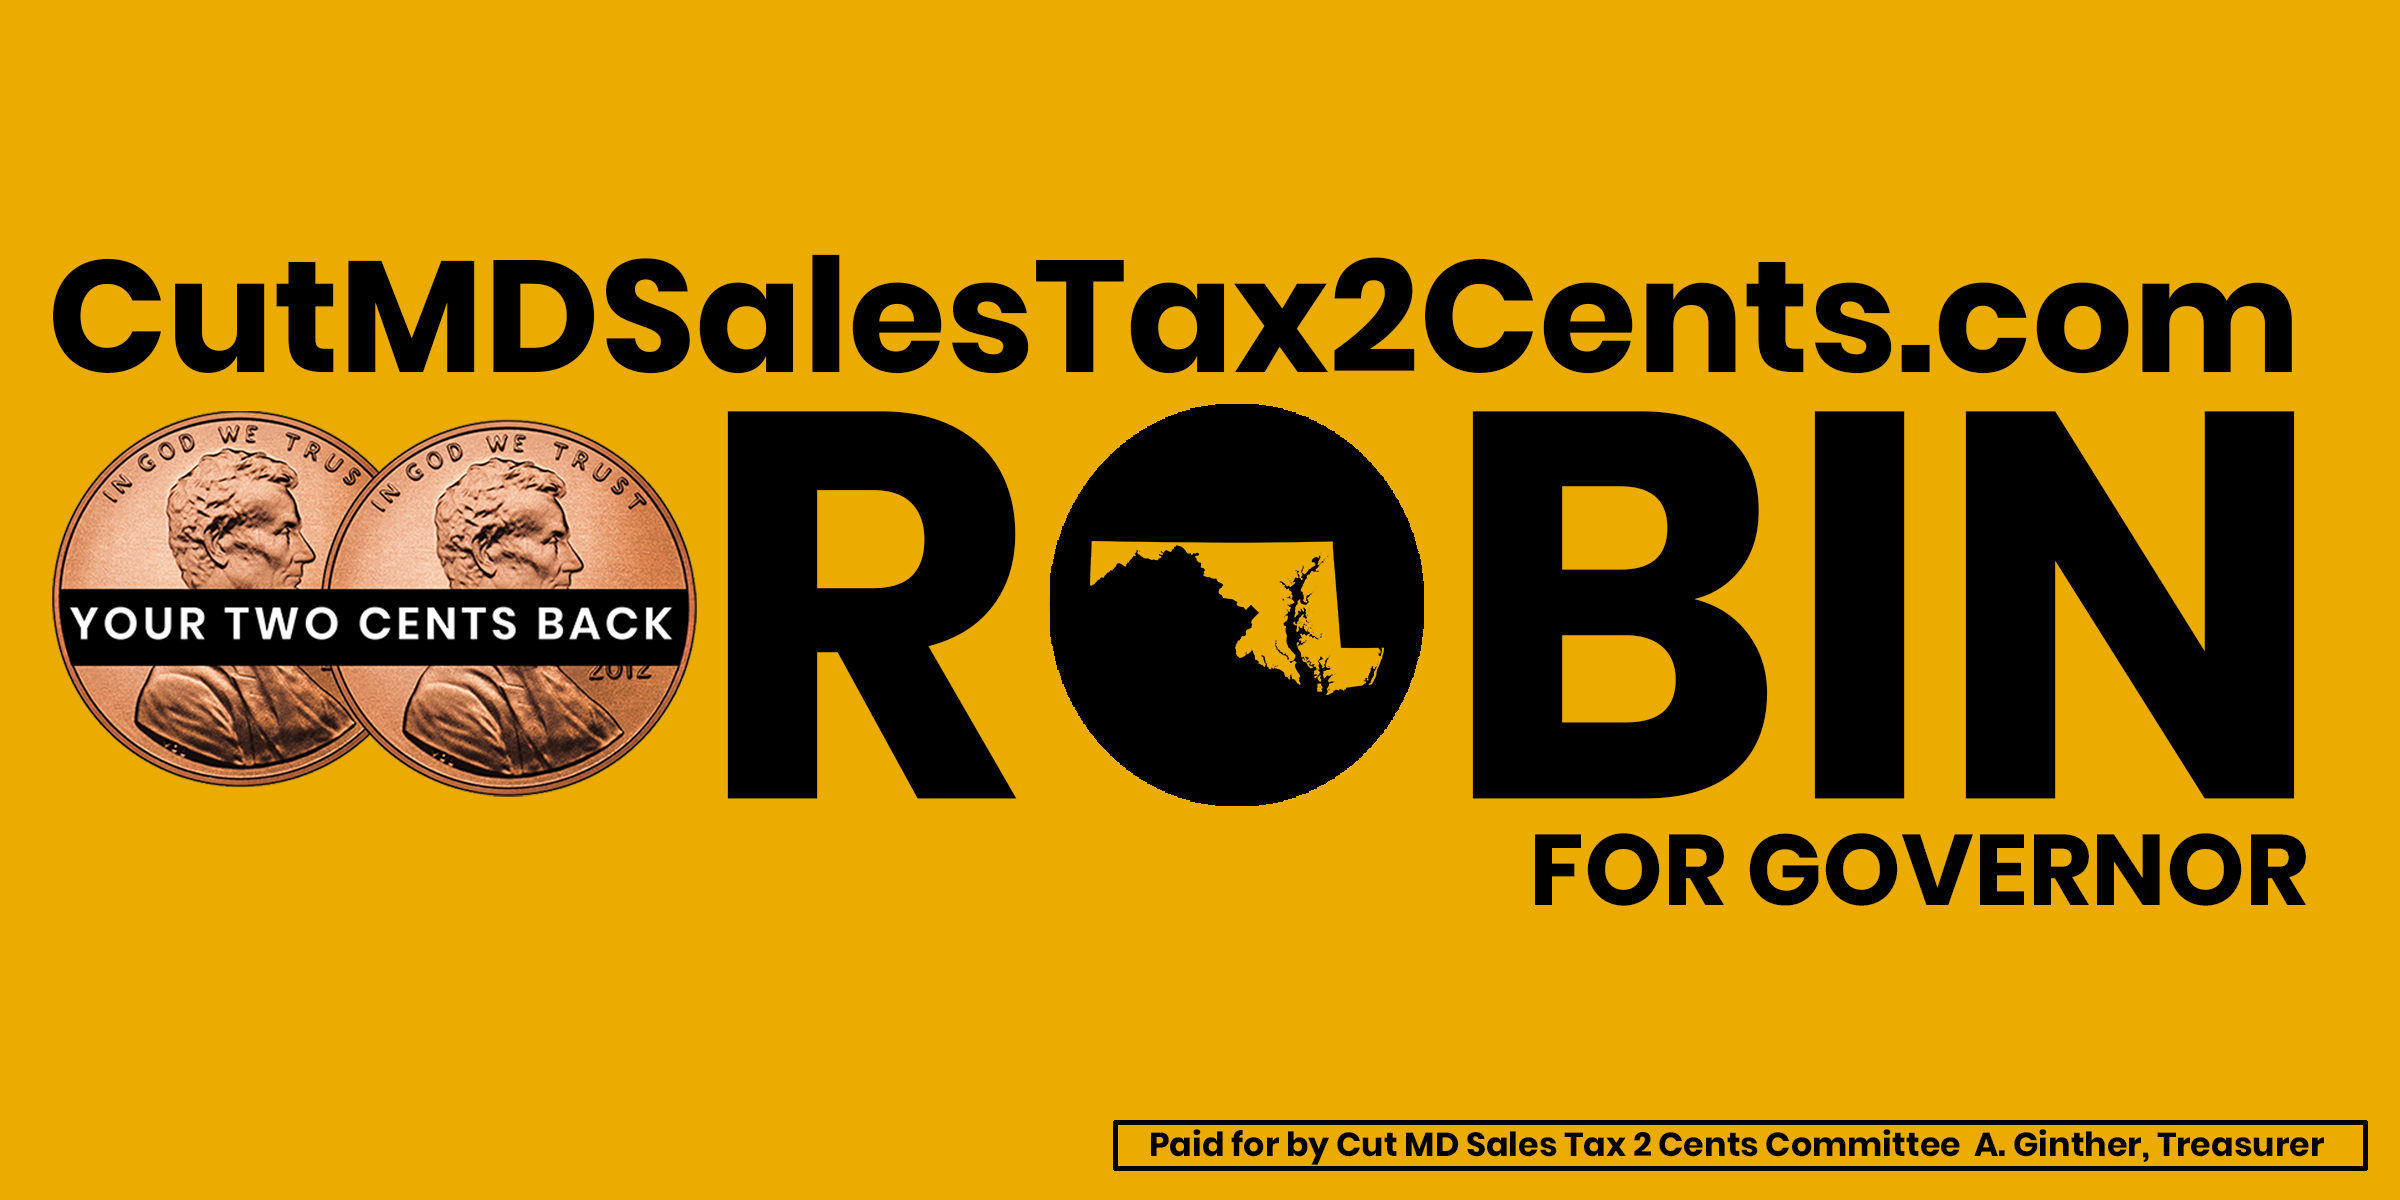 Cut Maryland Sales Tax 2 Cents